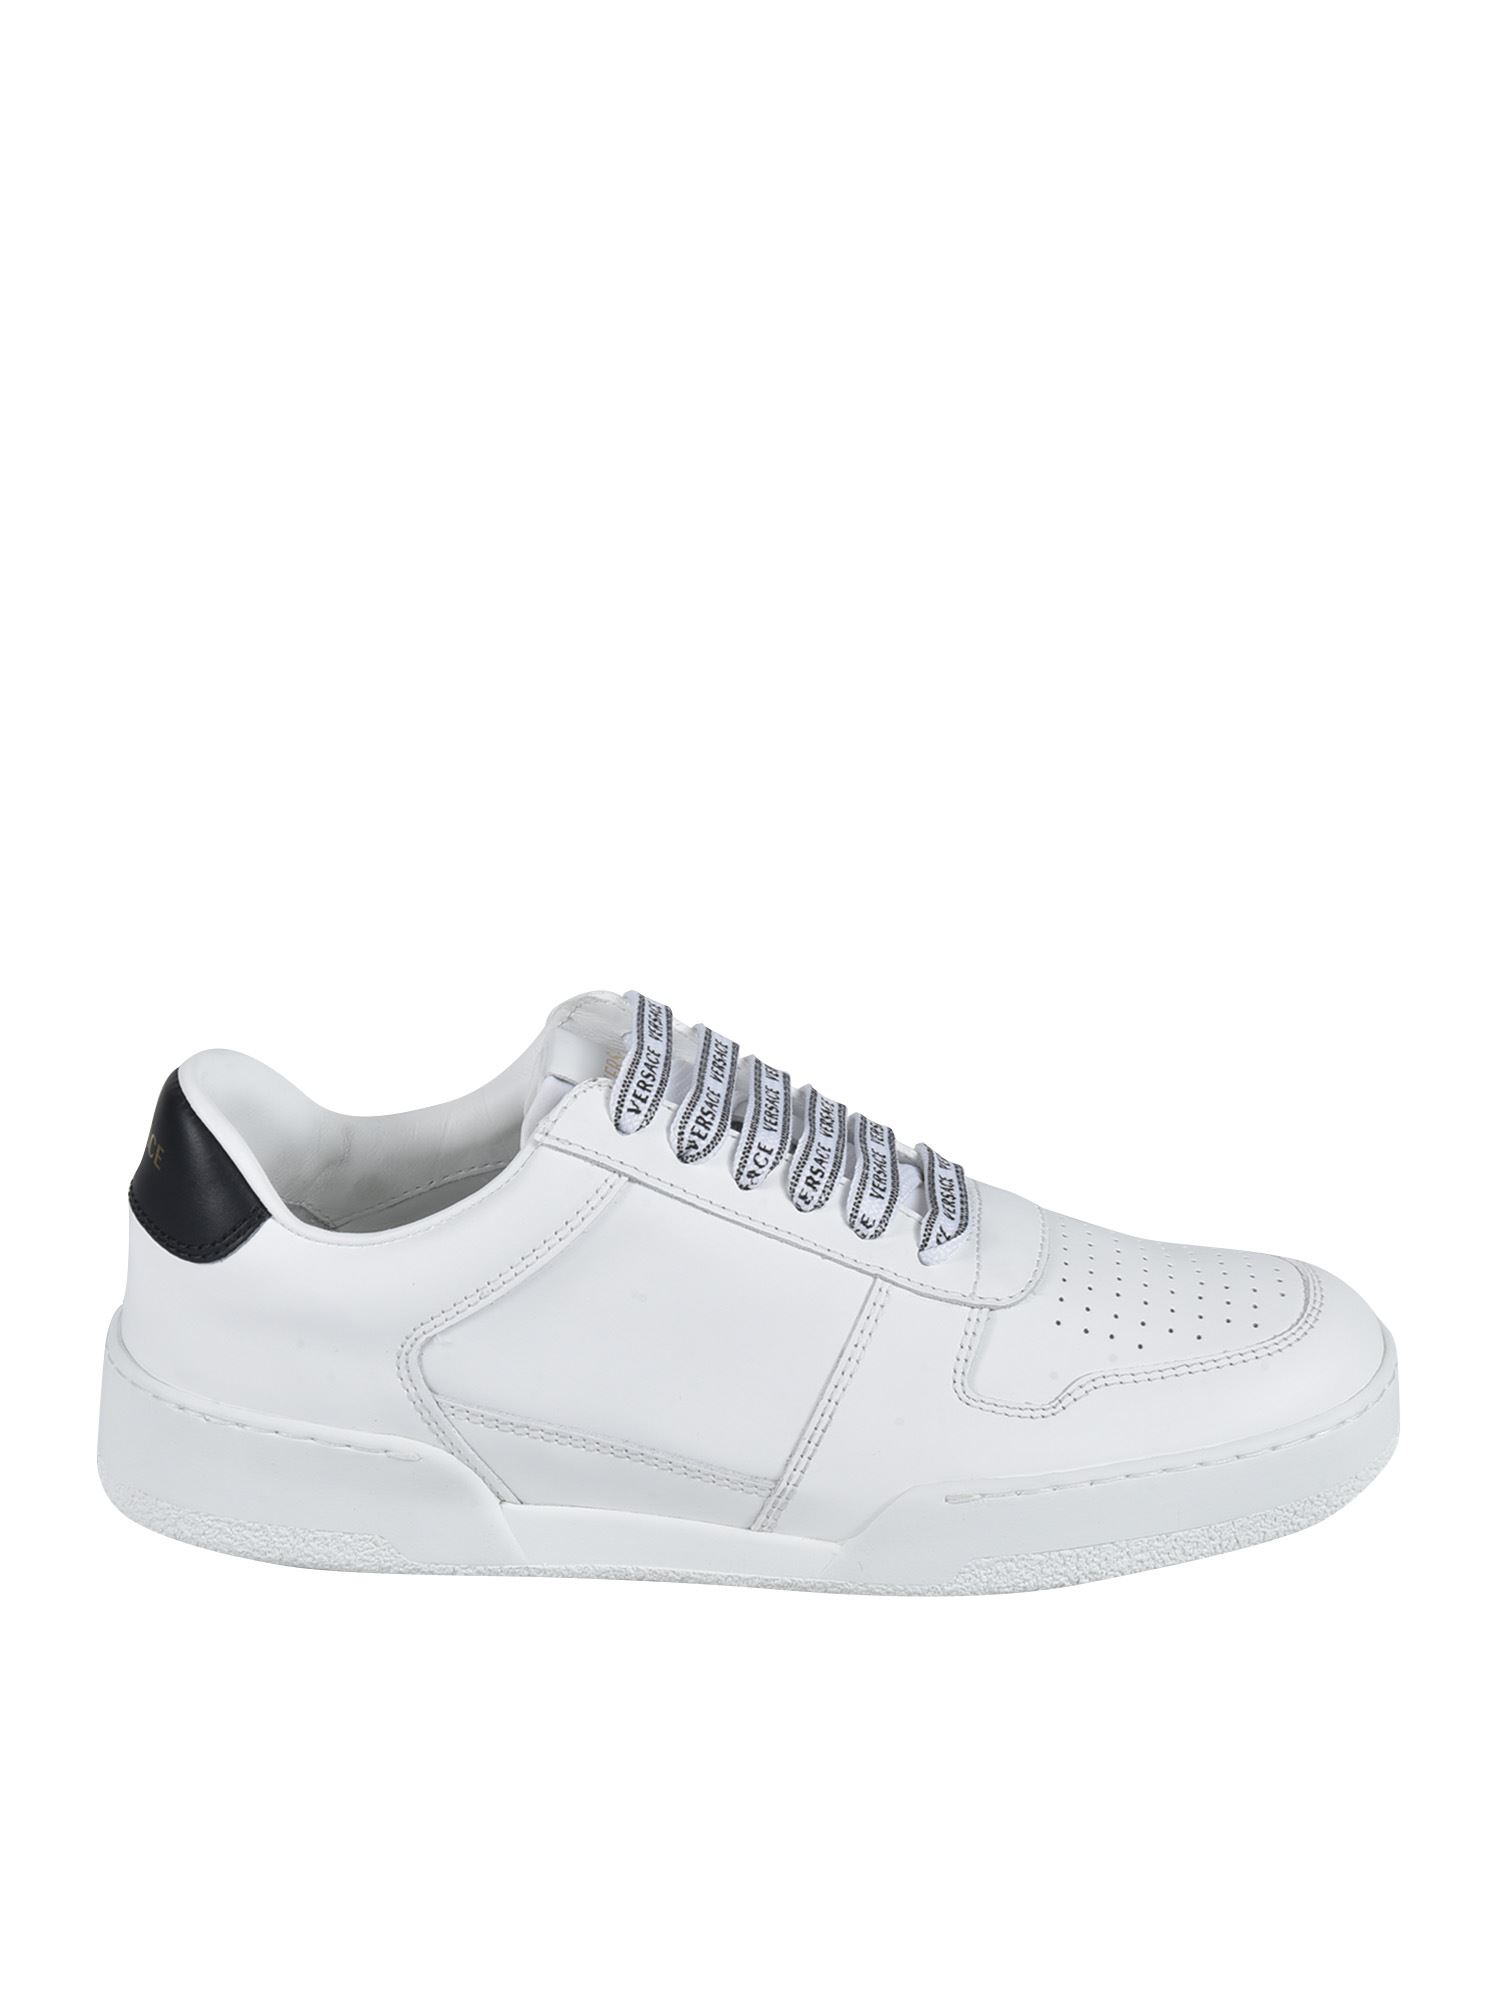 Versace ILUS SNEAKERS IN WHITE AND BLACK